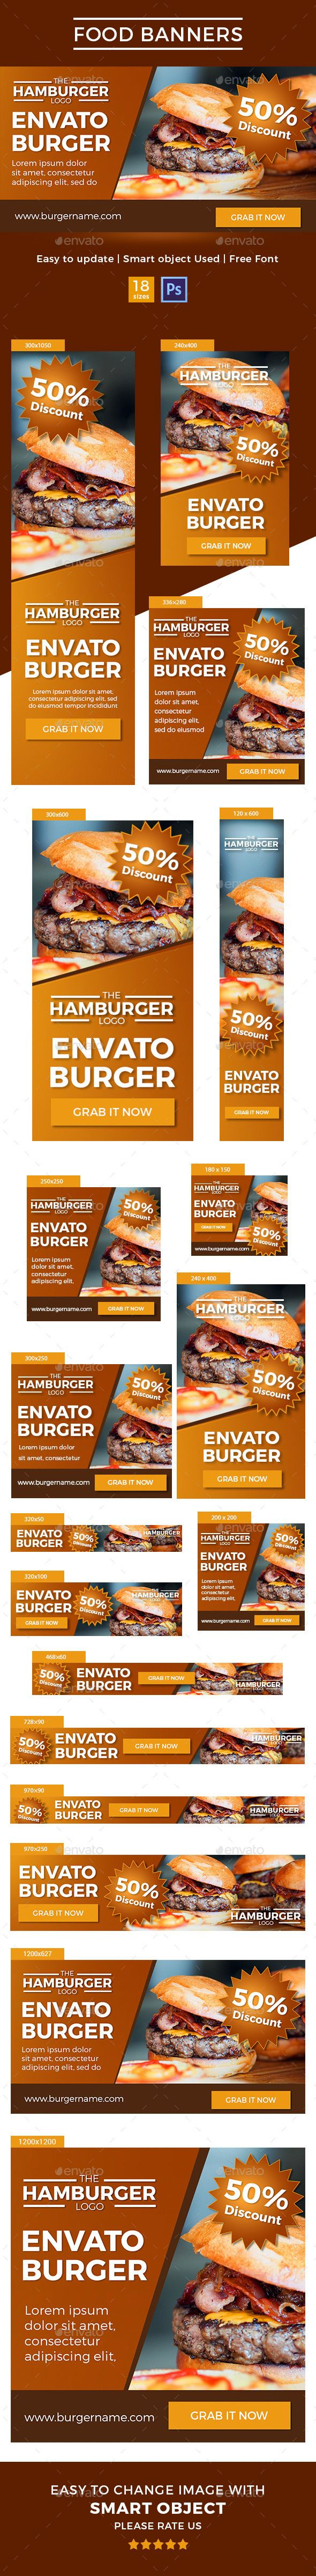 Food Banners — Photoshop PSD #adwords #banners • Available here → https://graphicriver.net/item/food-banners/14555504?ref=pxcr